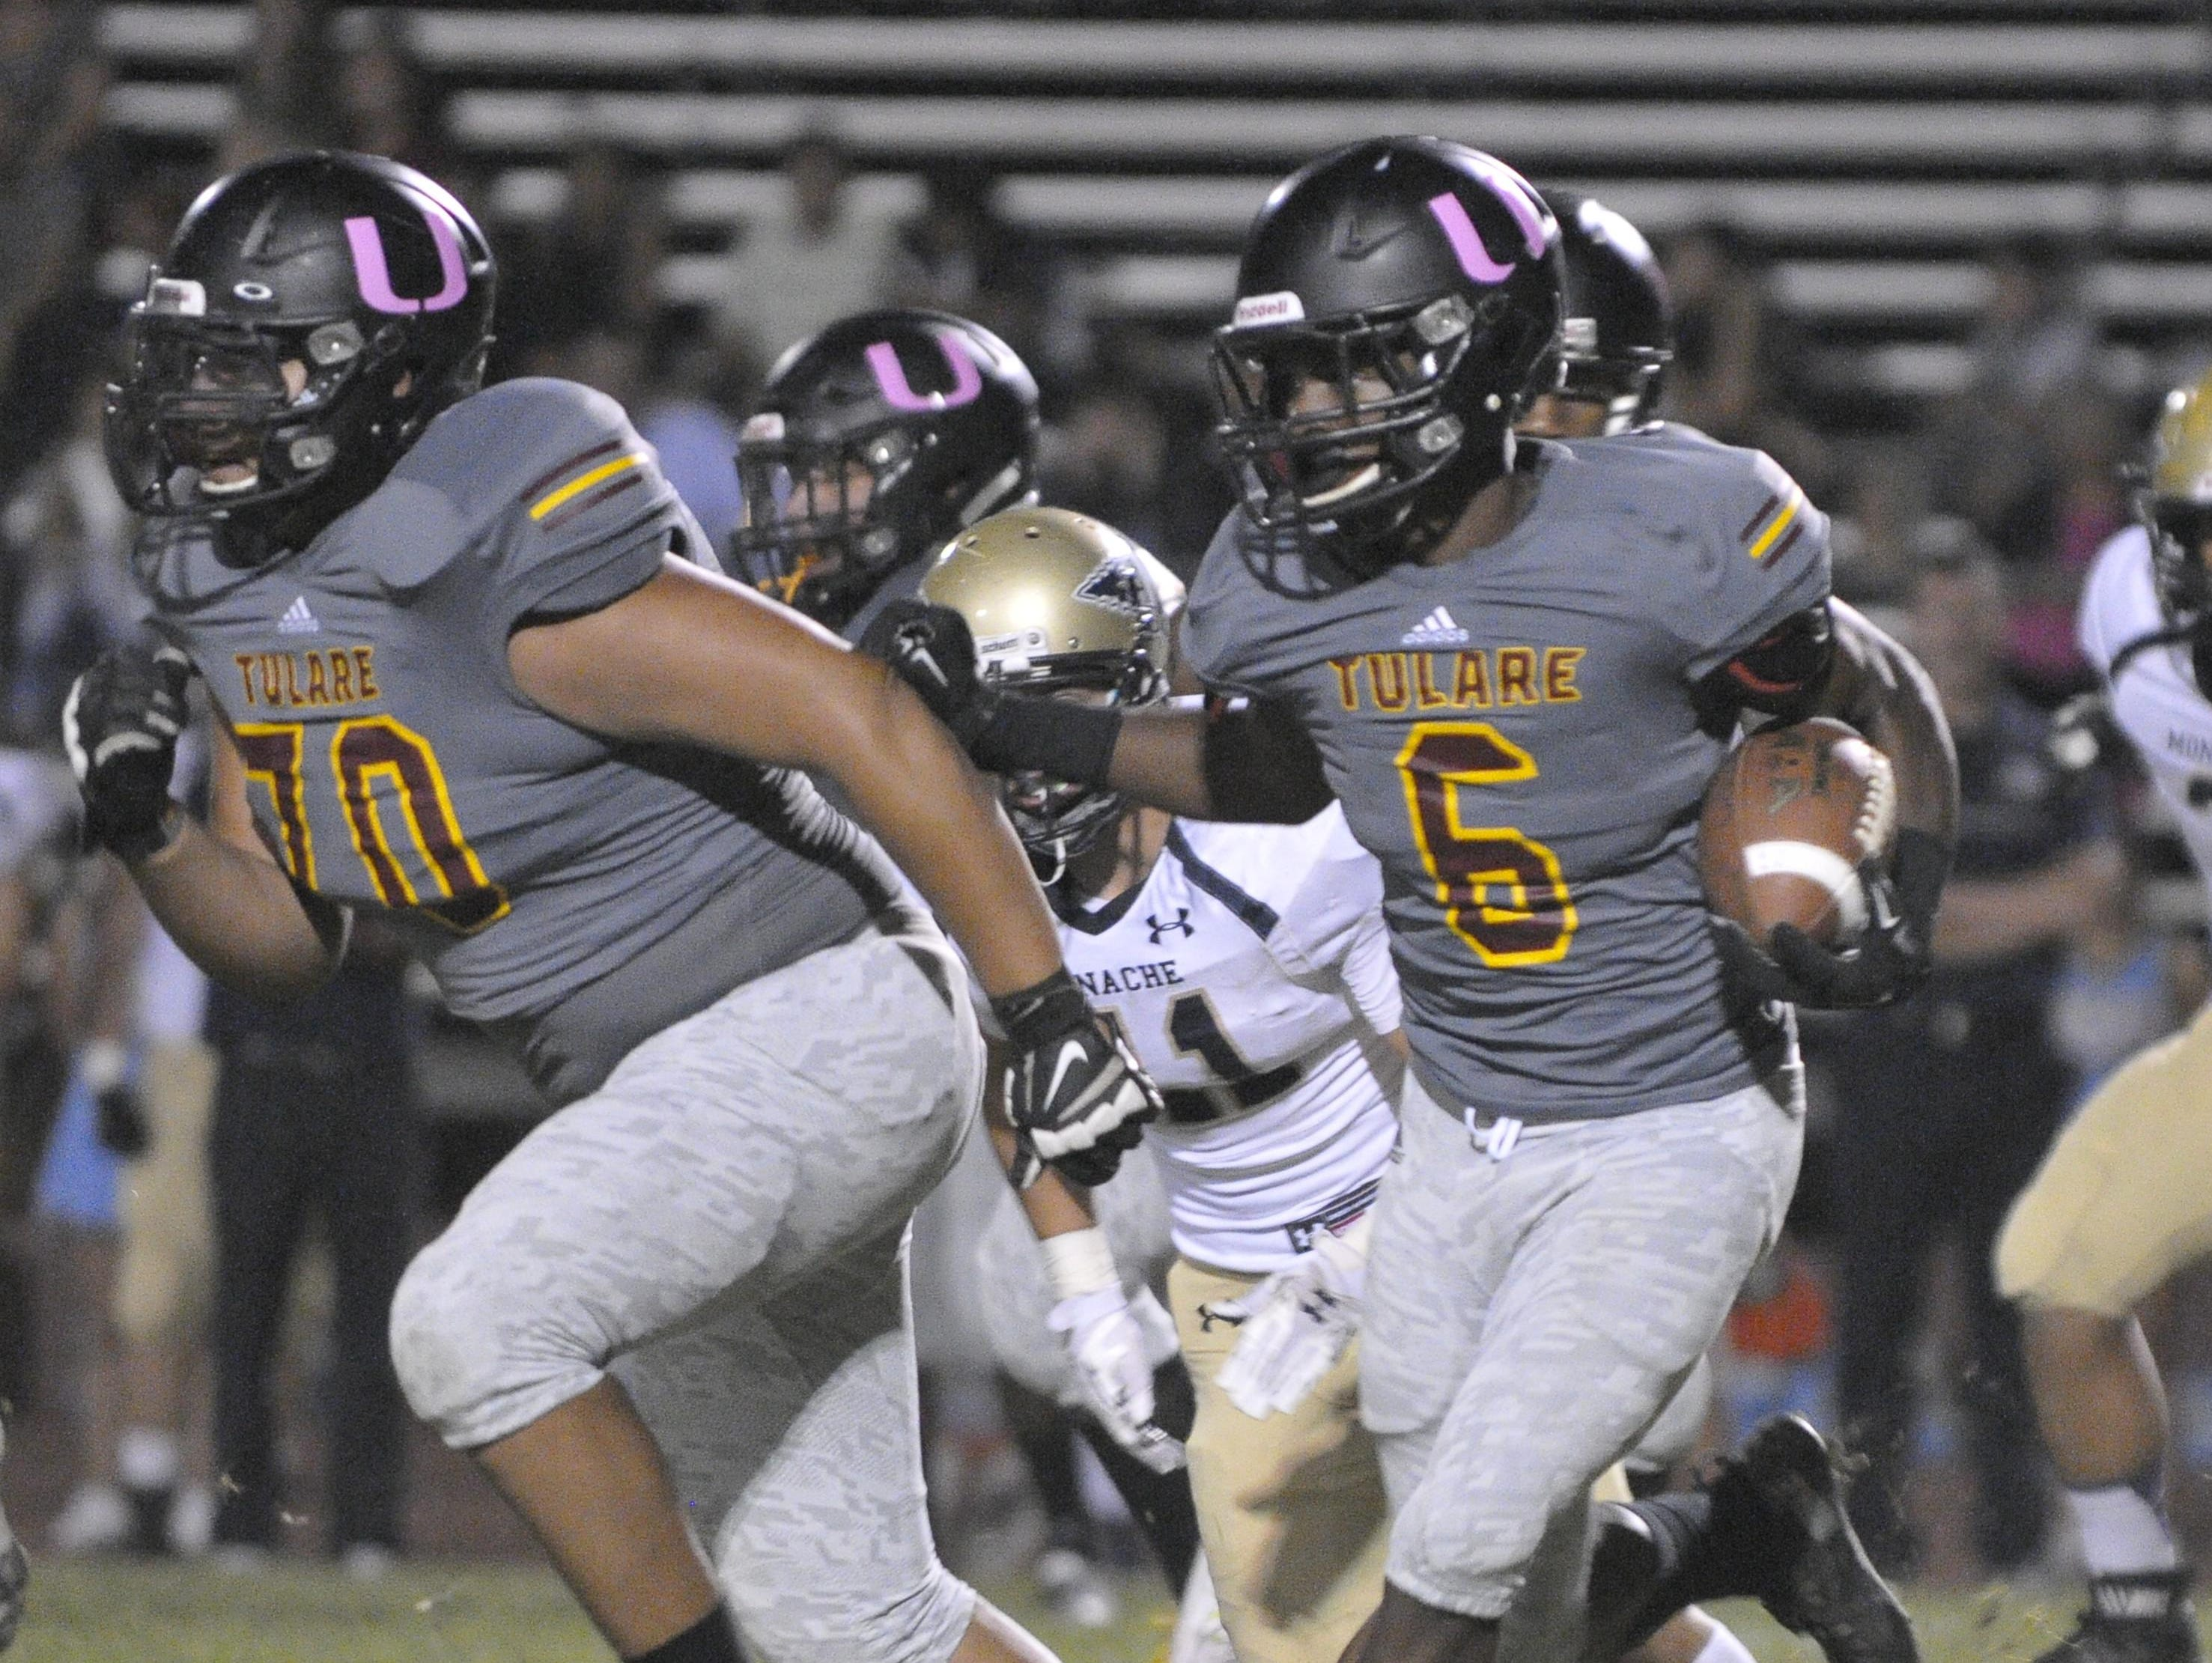 Tulare Union's Romeo Harris gets help from Ulisis Nunez as he runs the ball against Monache in an EYL game at Bob Mathias Stadium on Friday, October 9, 2015. Photo by Michael Alvarez Photo taken on 10/9/15 in Tulare, Ca. 1009_FBP_Monache-TU_0034 Camera data: 10/9/15 at 6:44:14 PM, ISO 4000, 1/400 @ f/2.8, WB=AUTO, 200mm, , FINE, frame 0034.